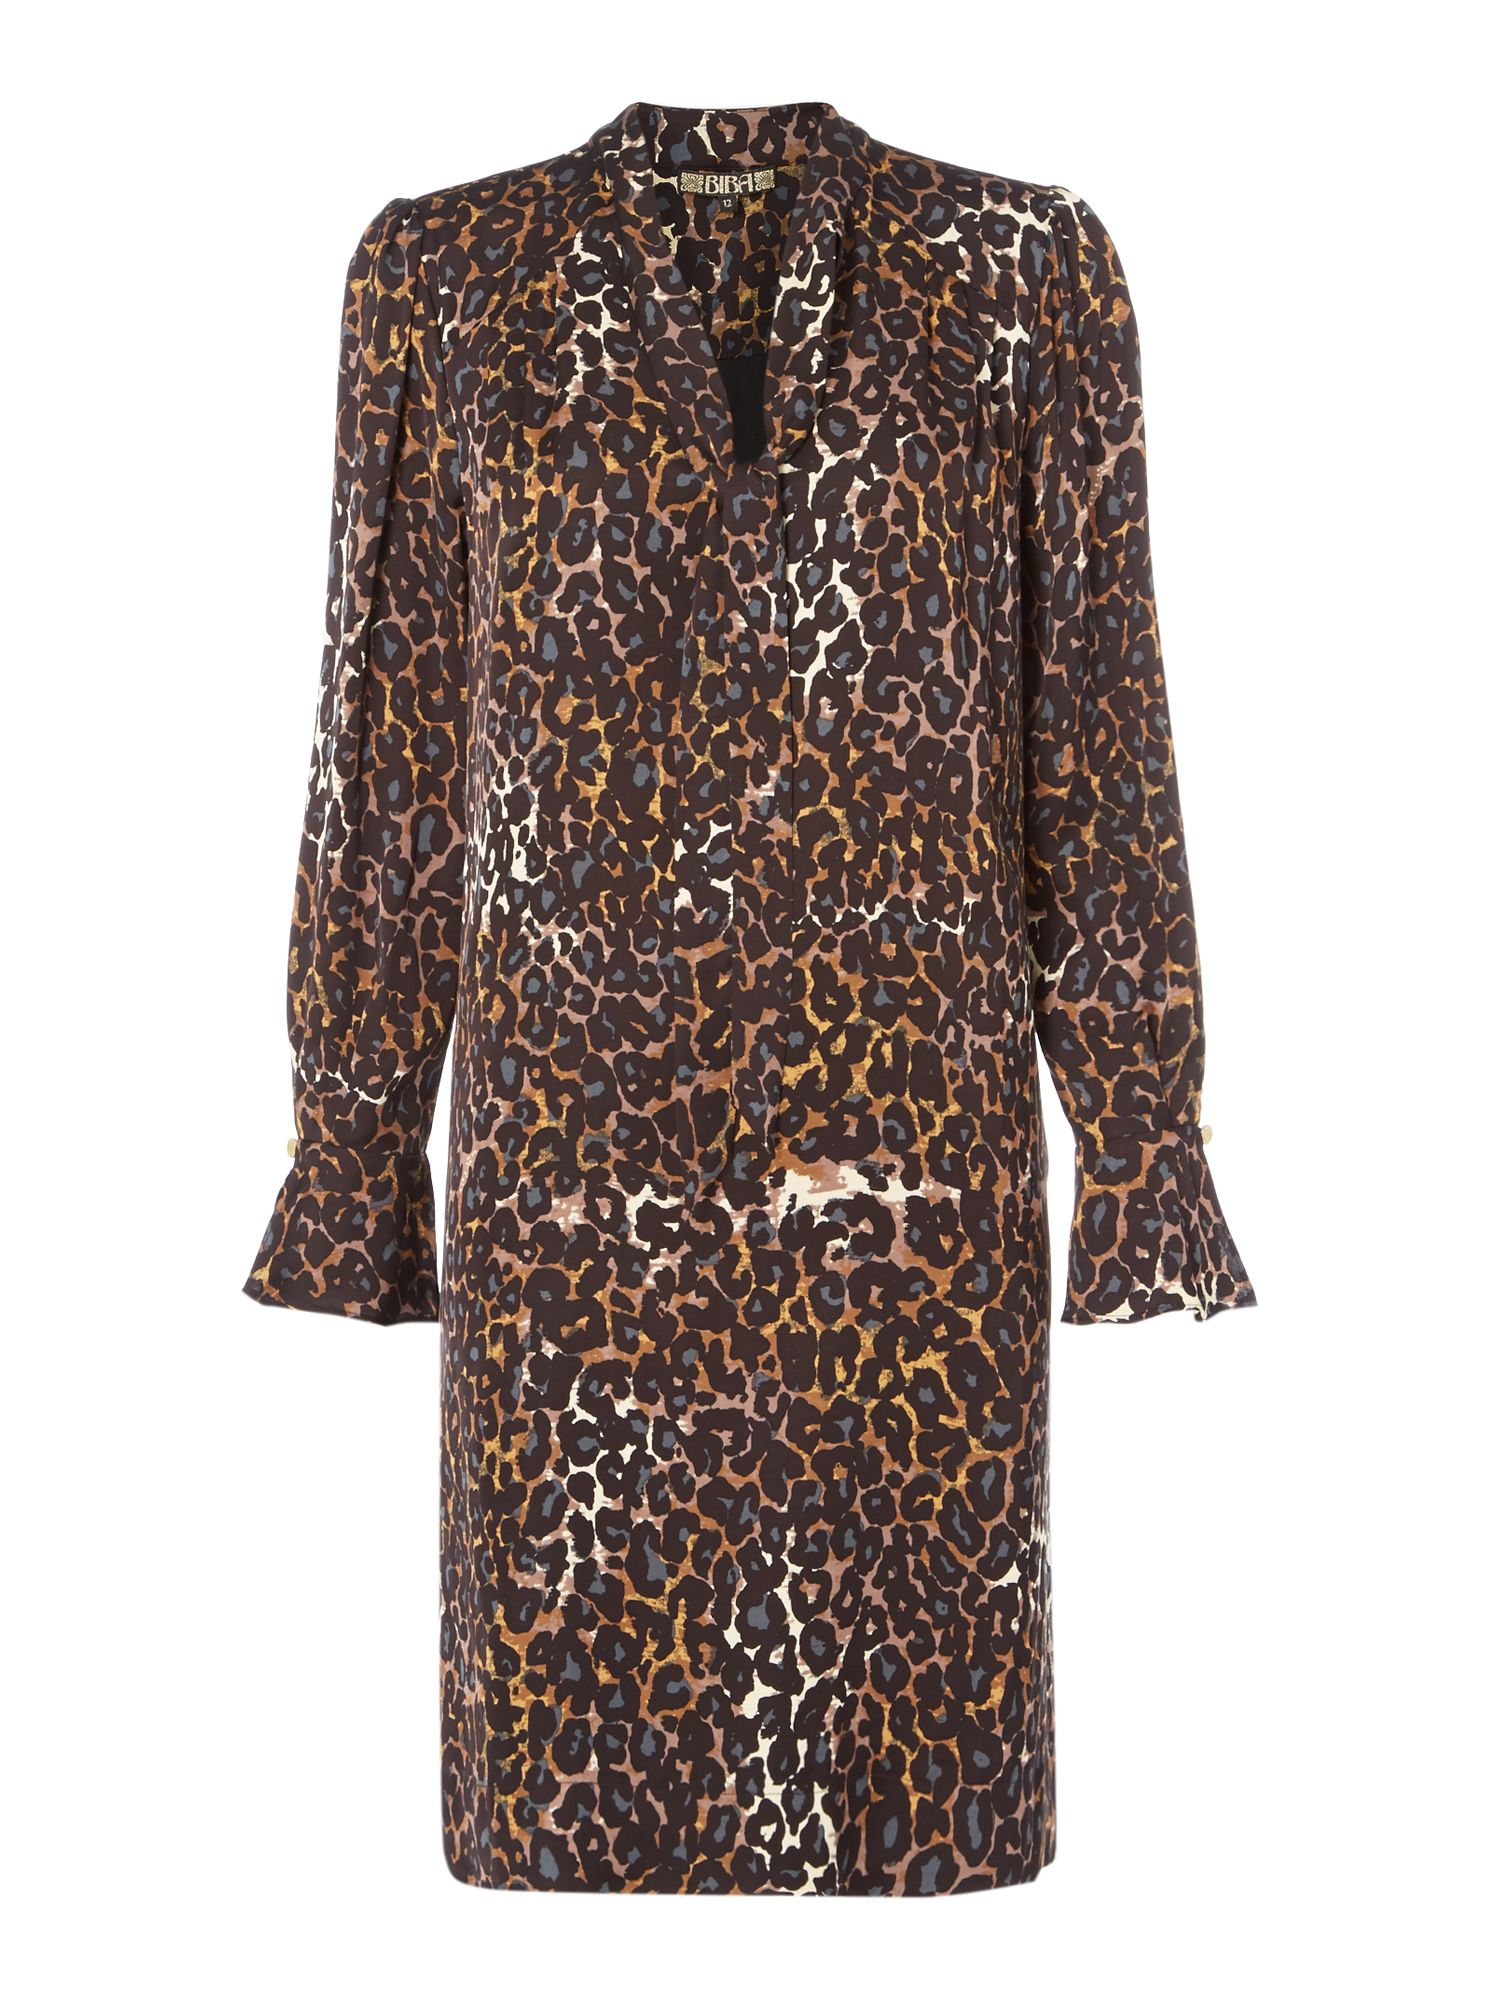 Biba Leopard print pussybow dress, Multi-Coloured